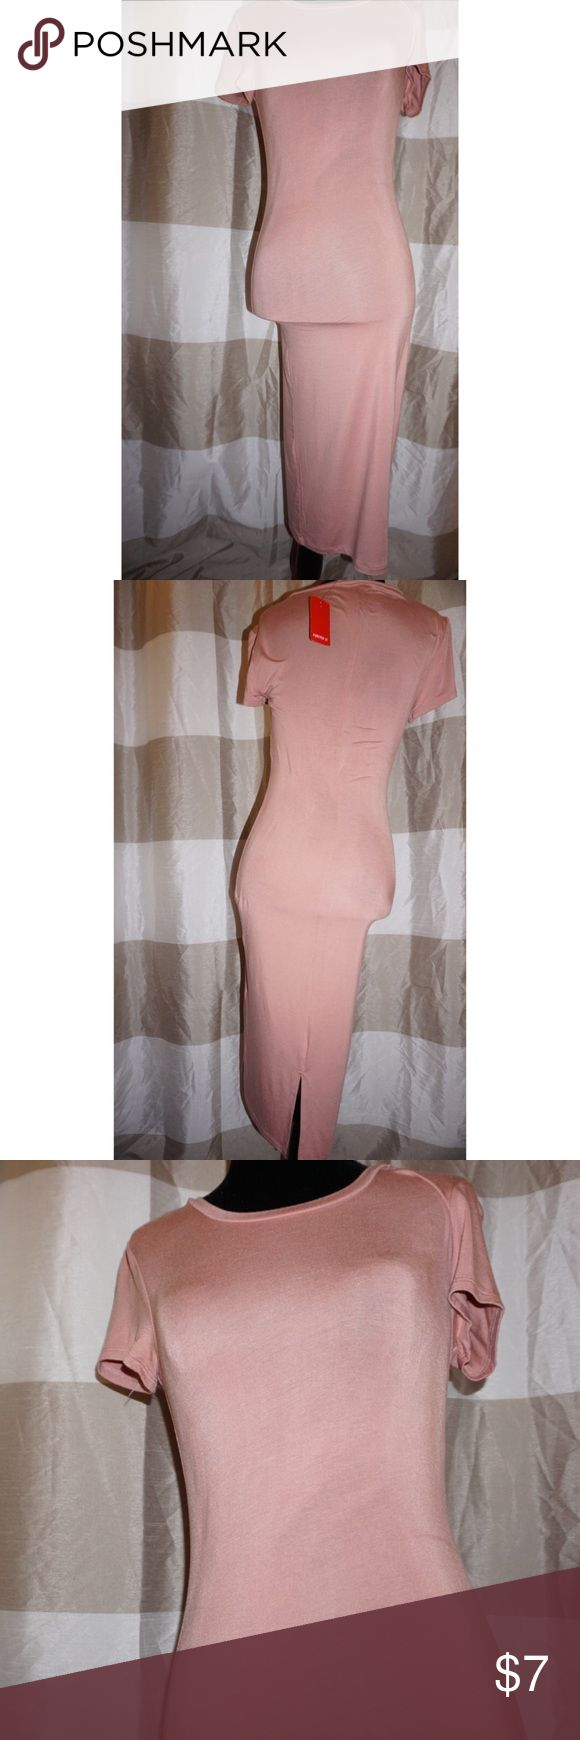 Rose Pink Bodycon Midi Dress Sz Small Midi Bodycon short sleeve dress with small tail split in back. Dress has some dust on it but since it is new with tags a discount was applied. The dress will just need to be washed or wiped clean. Dress and colour is very versatile and can go from office wear to evening out, with nude lips or even the same Pink rosy lip color with gold eyeshadow. Forever 21 Dresses Midi